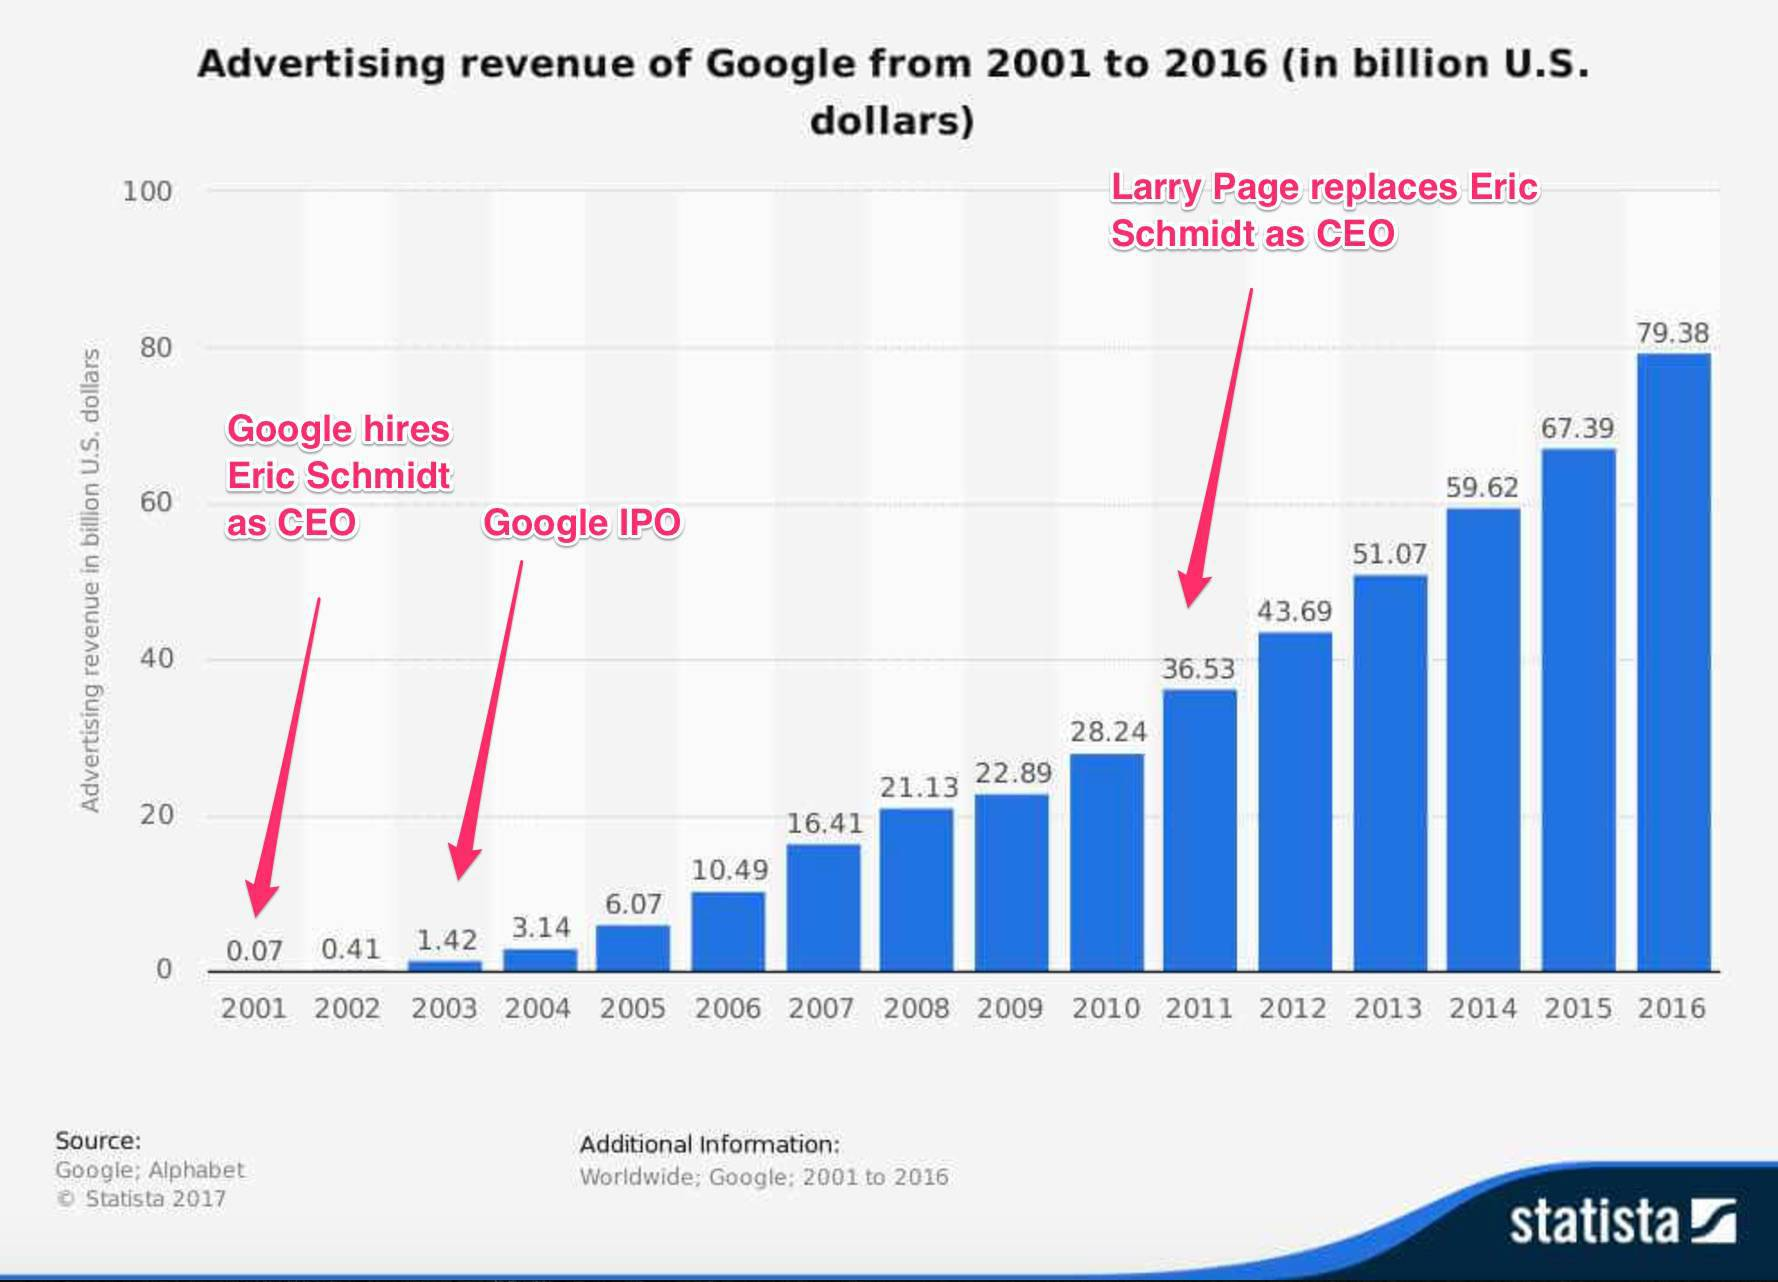 Google's Ad revenue from 2001 to 2016